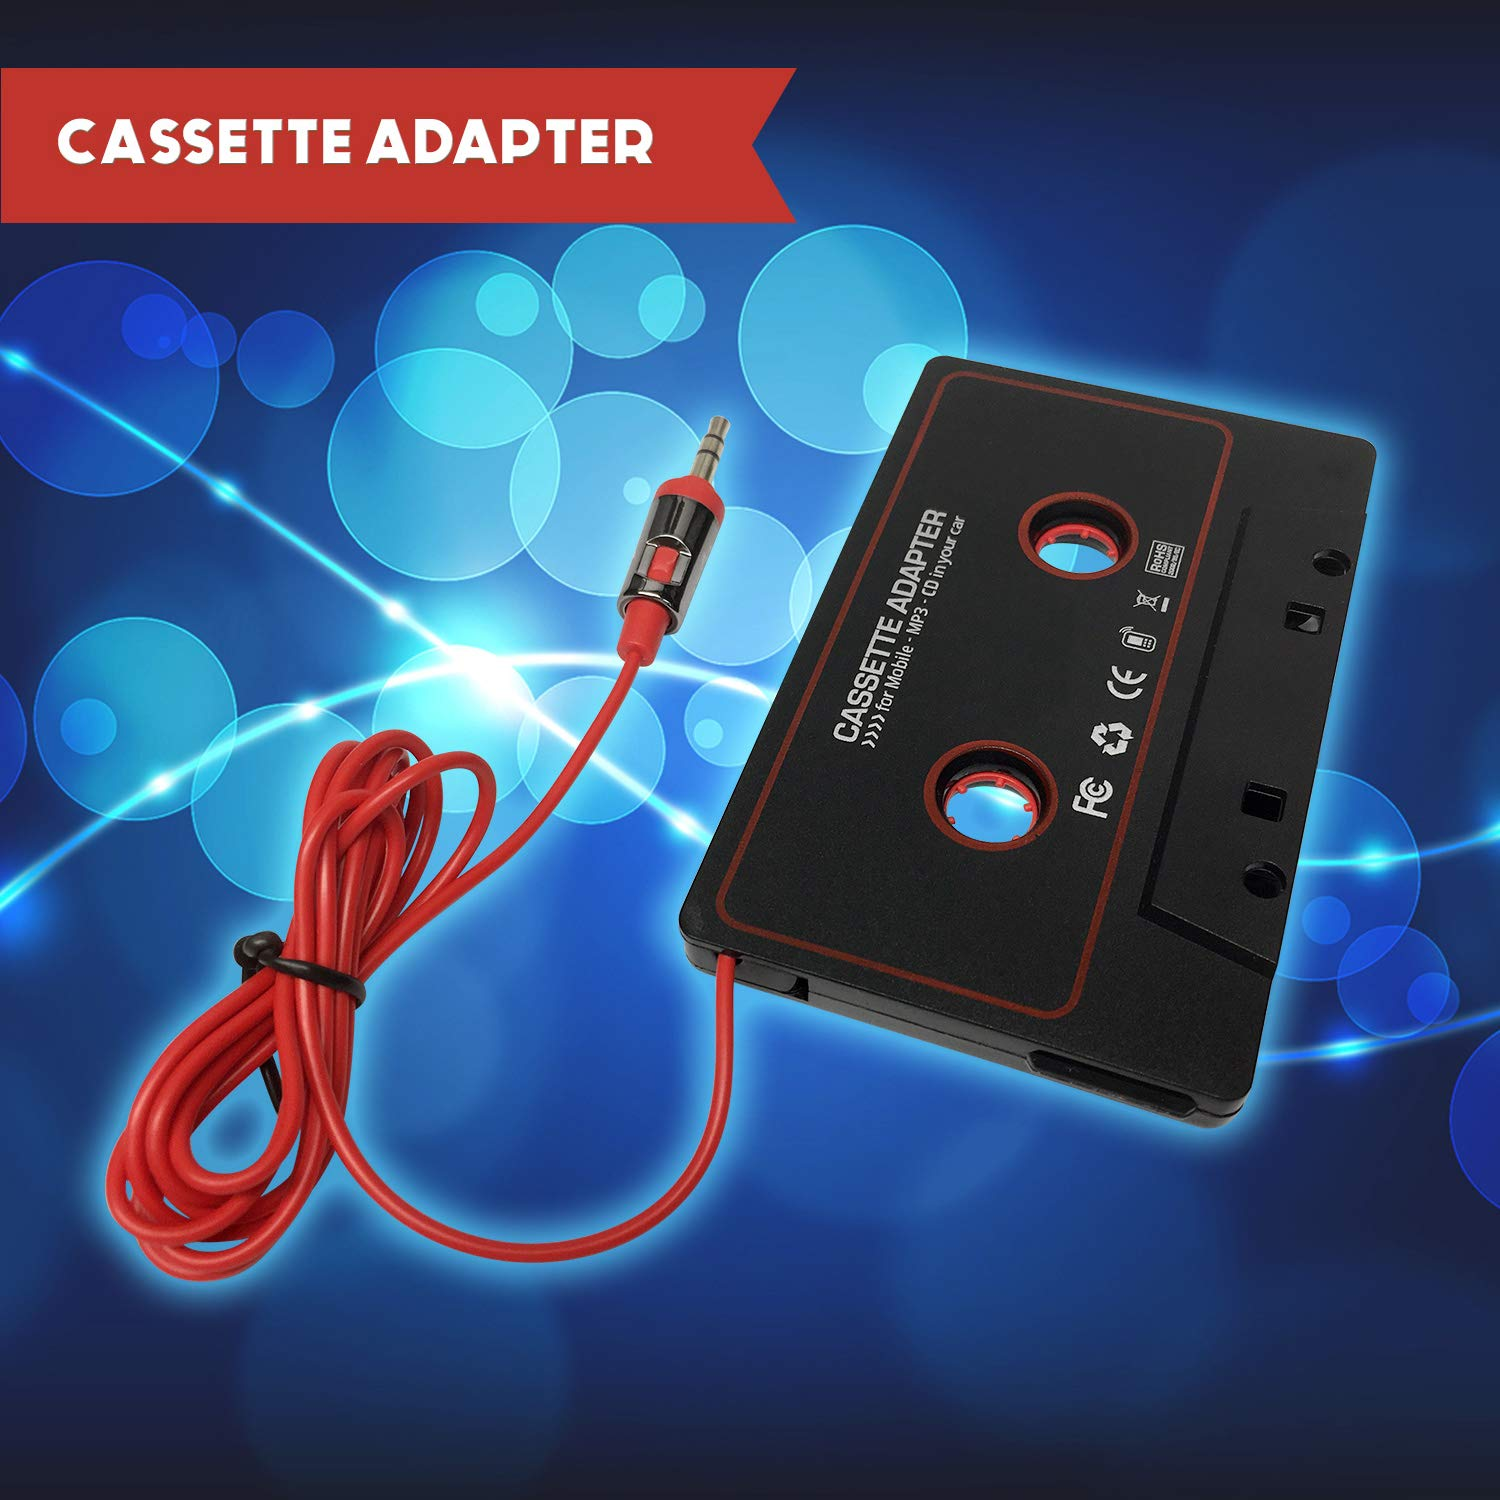 Cerepros Cassette Adapter Audio Stereo 3.5mm Aux Cable Cord to Car Vehicle Radio Deck